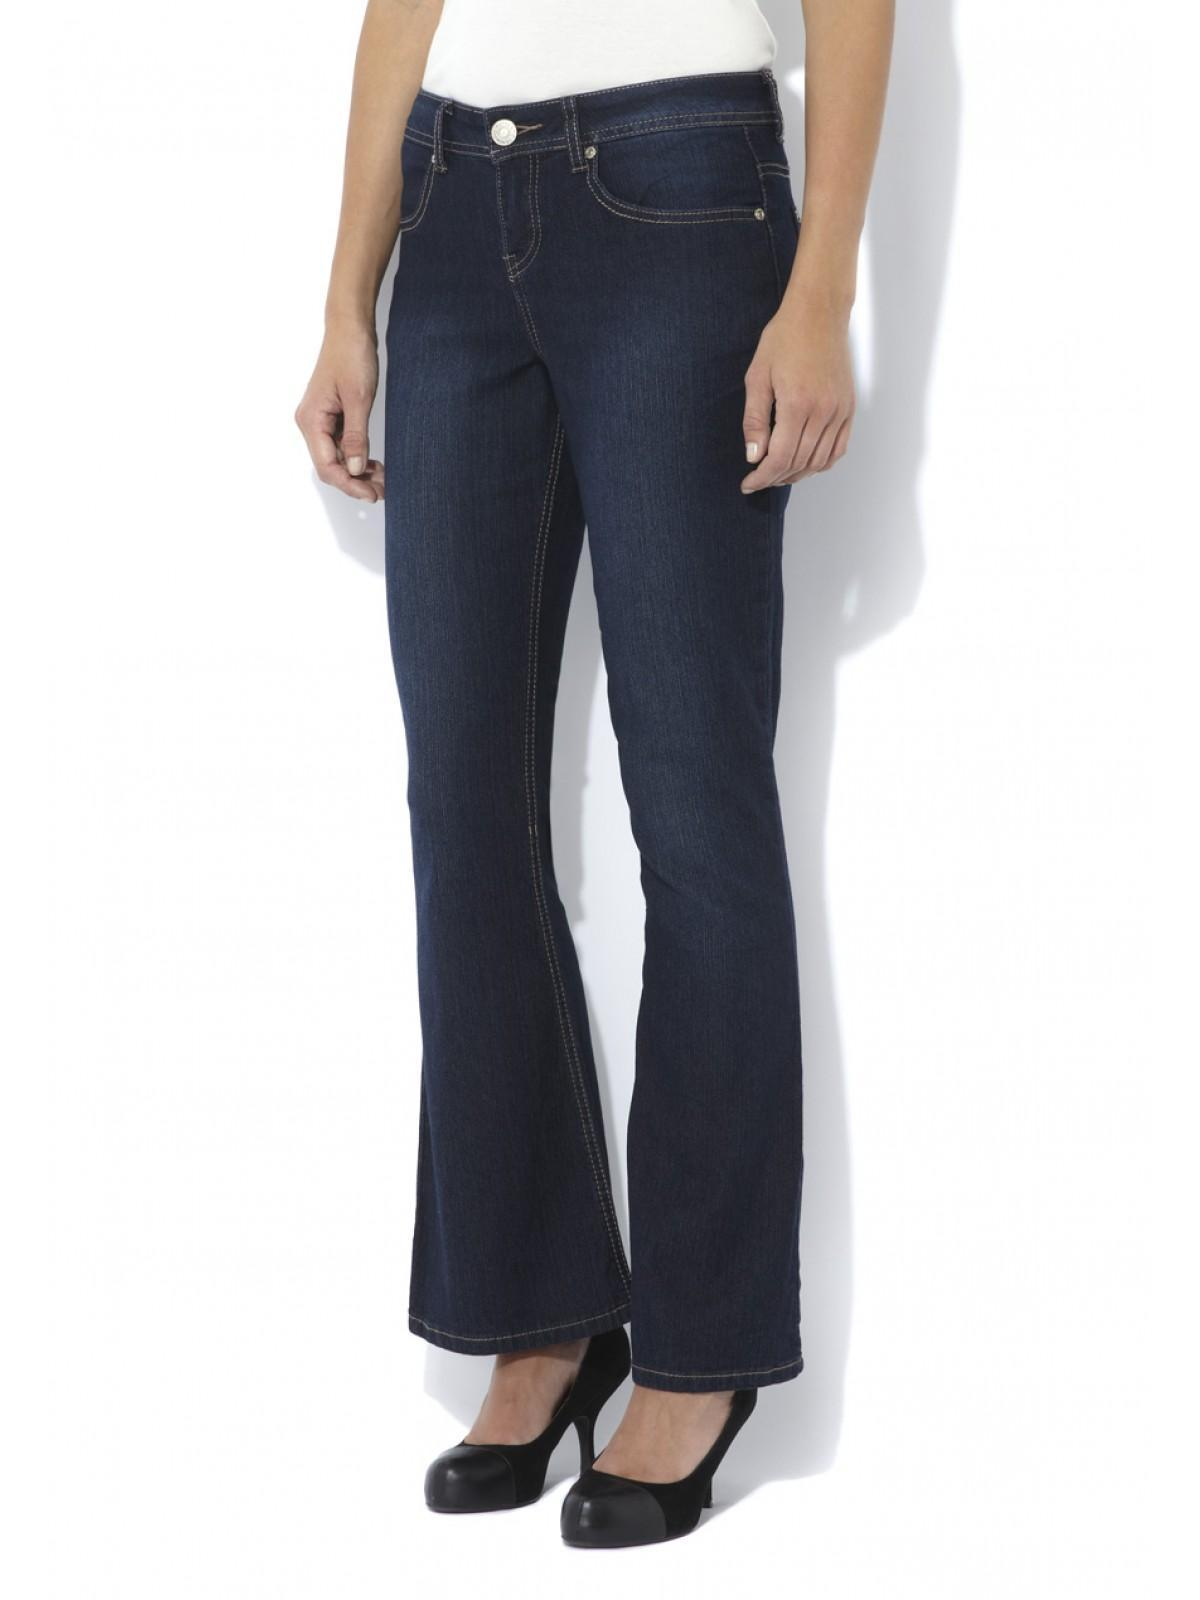 Womens Bootcut Jeans (Short Length) | Peacocks